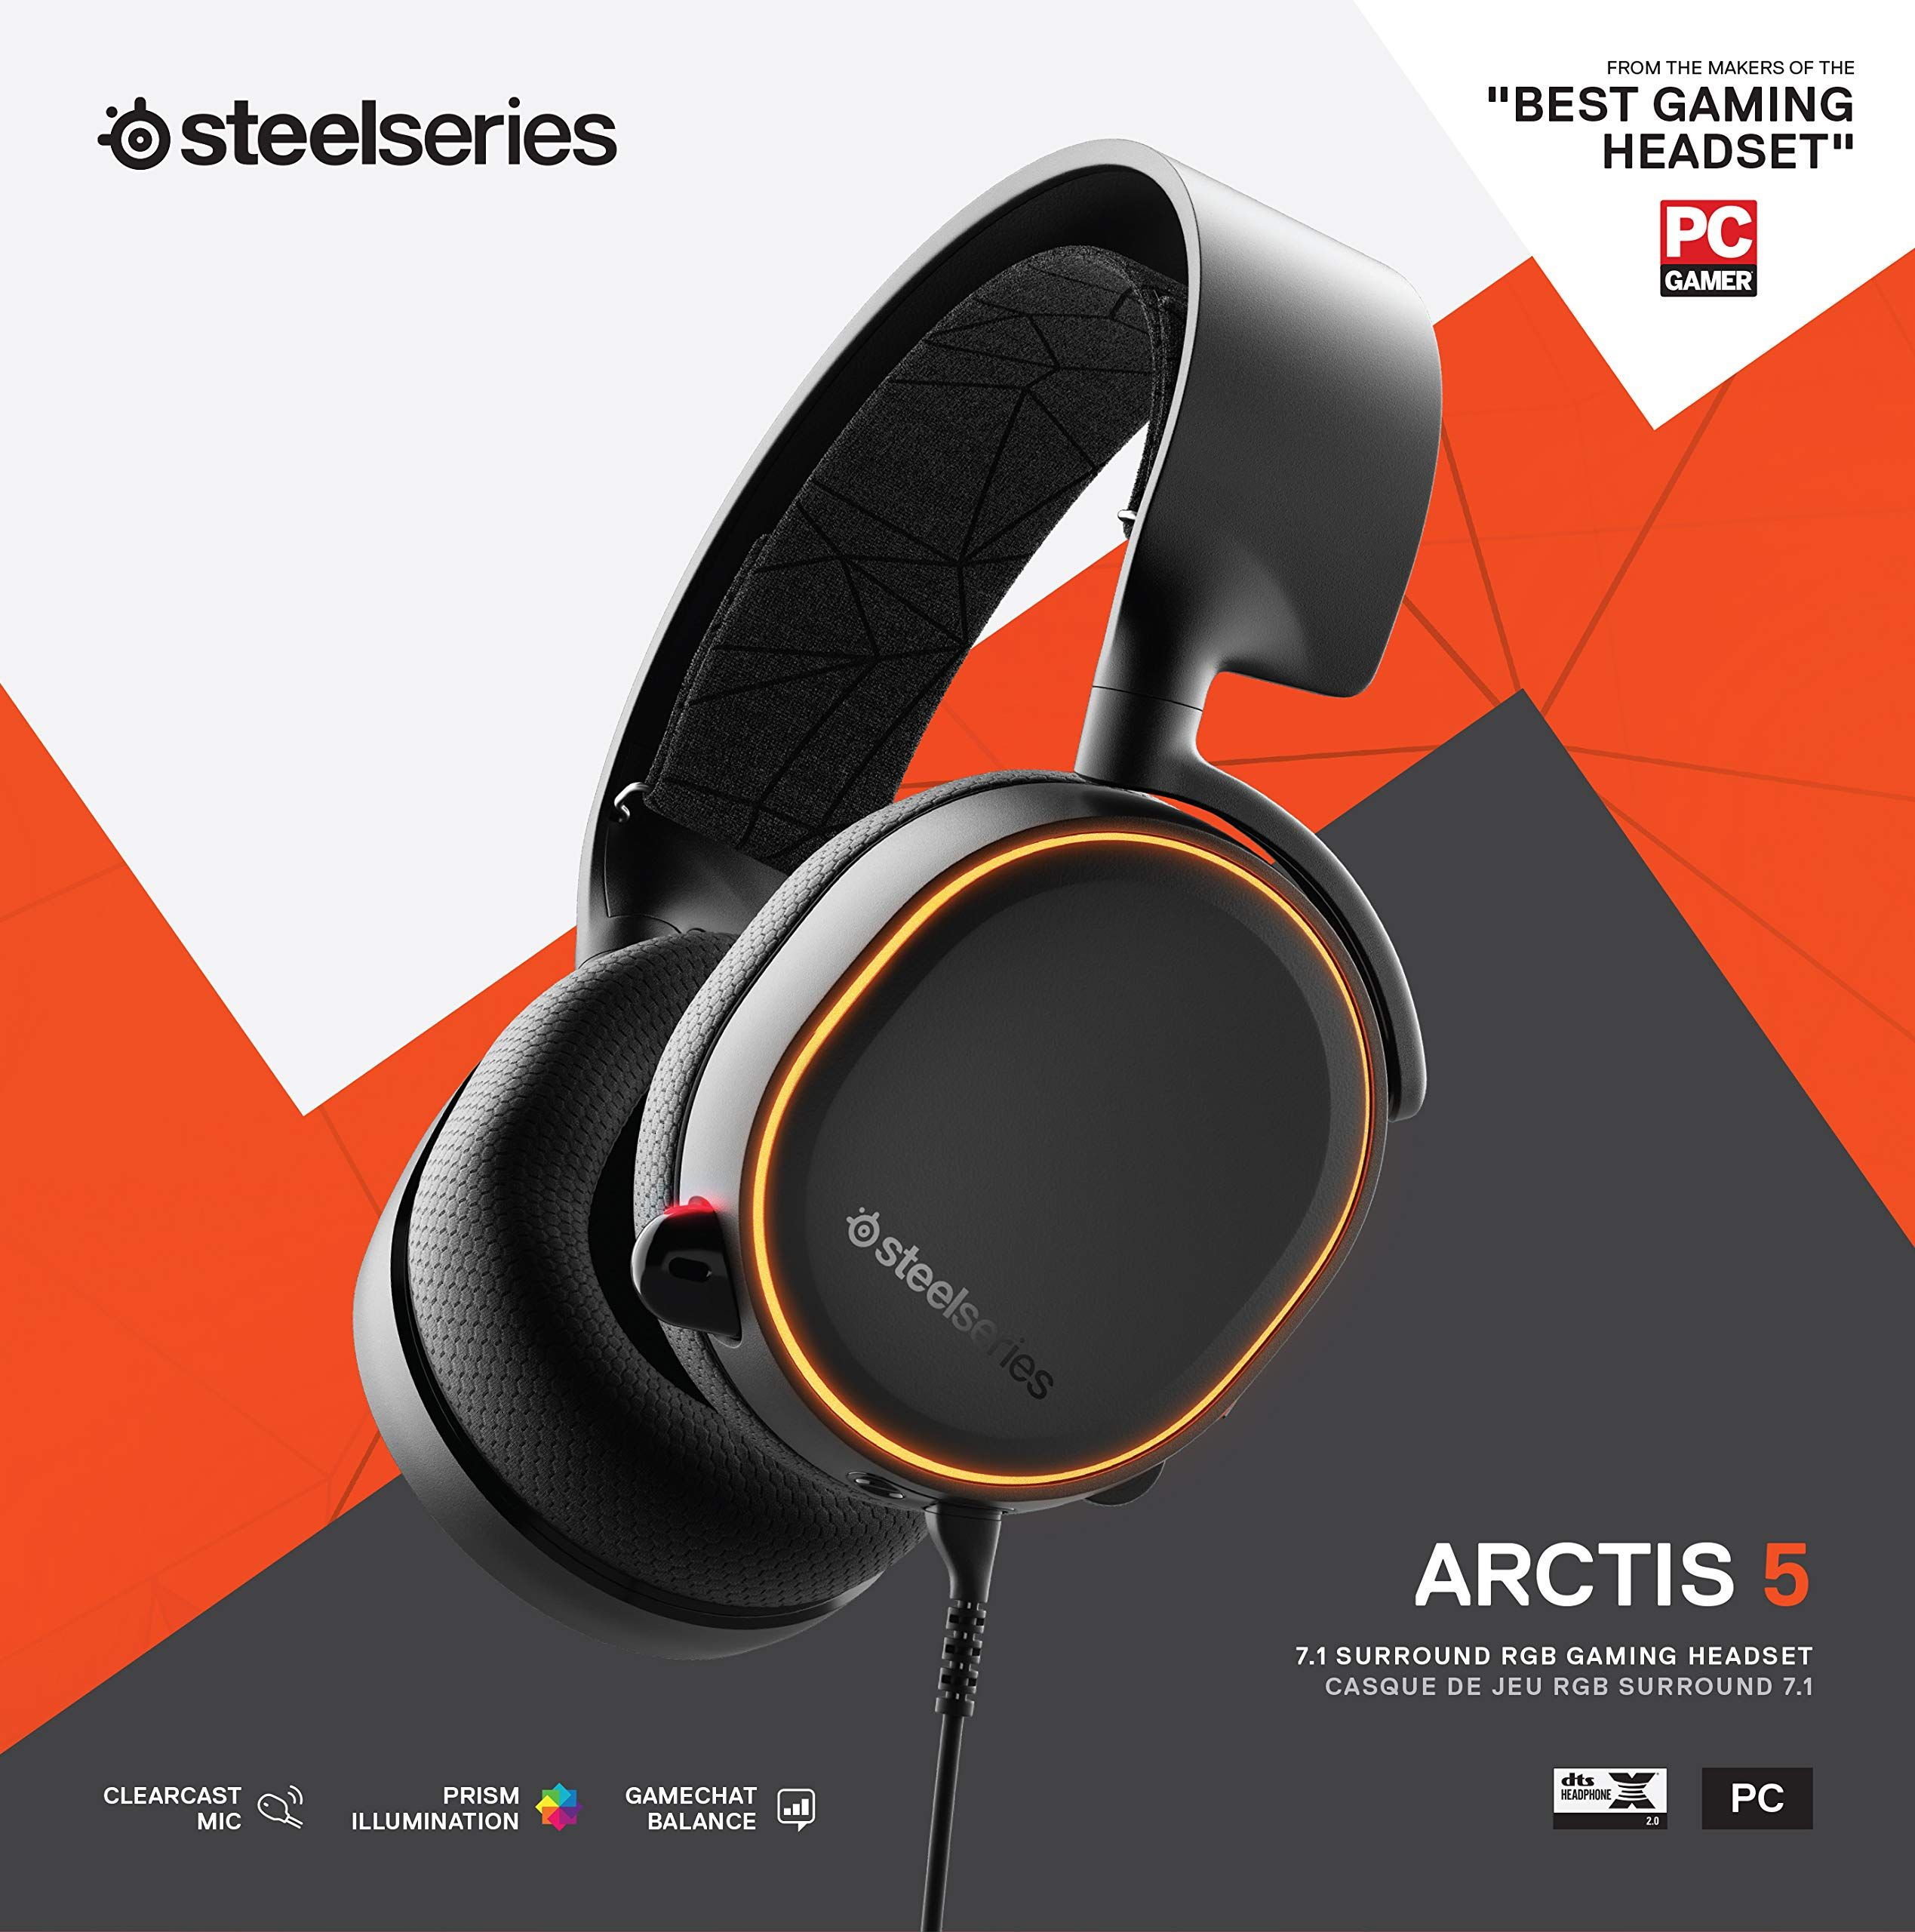 Steelseries Arctis 5 2019 Edition Rgb Illuminated Gaming Headset With Dts Headphone X V2 0 Surround For Pc And Playstation Headset Gaming Headset Steelseries